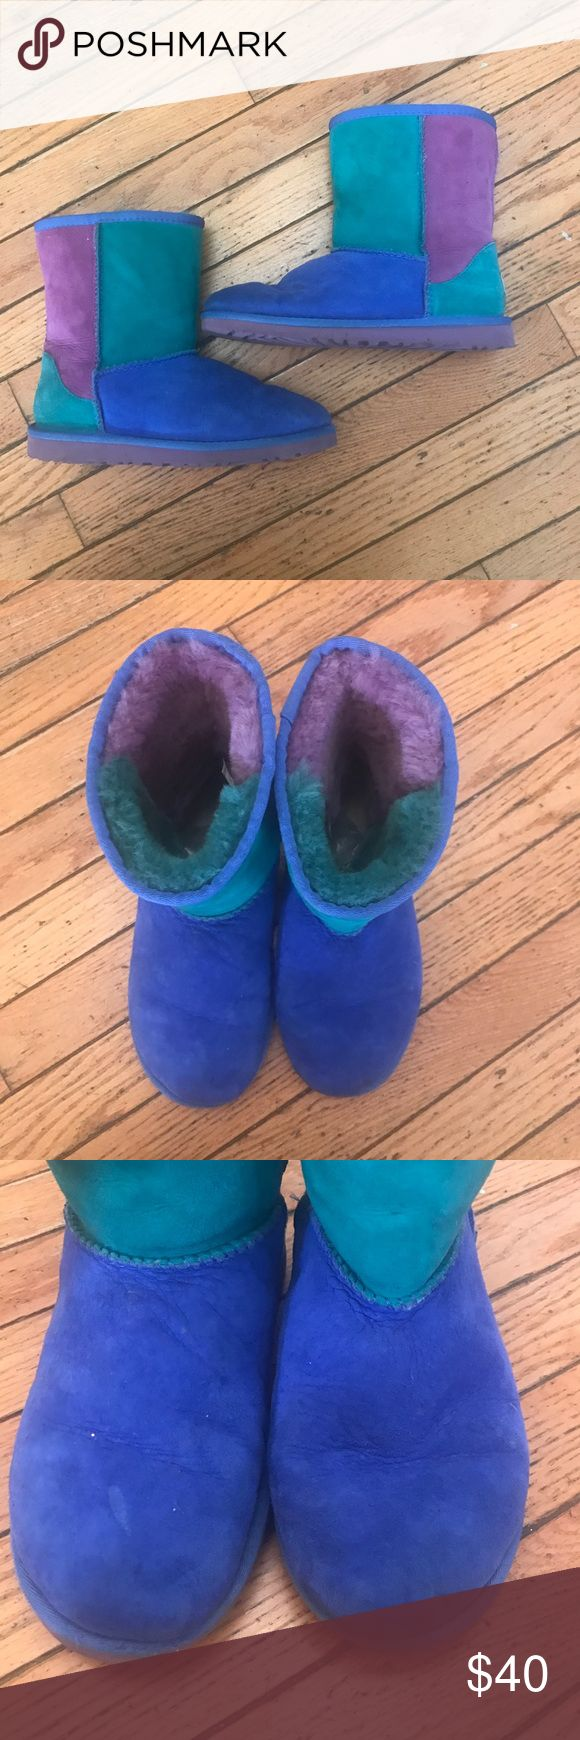 UGG Kids Classic Patchwork Boots in Dried Lavender Worn so please view all pictures carefully!! These boots are a KIDS size 4 so they are a WOMENS size 6! Multi color boots. Genuine twinface sheepskin. This boot offers you a classic UGG look with a unique stylish twist. UGG Shoes Boots